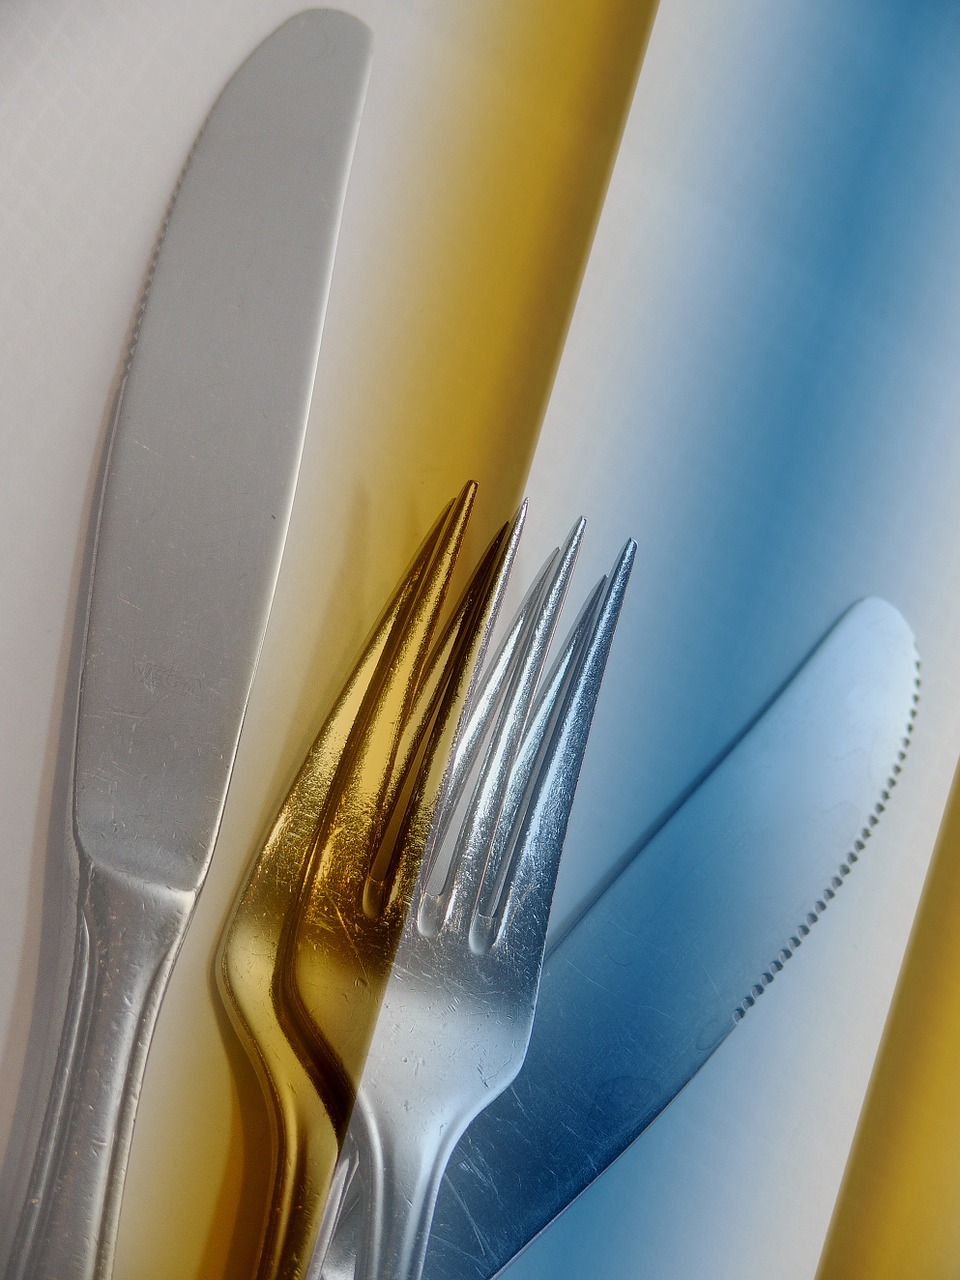 Cutlery,eat,fork,kitchen,spoon - free photo from needpix.com